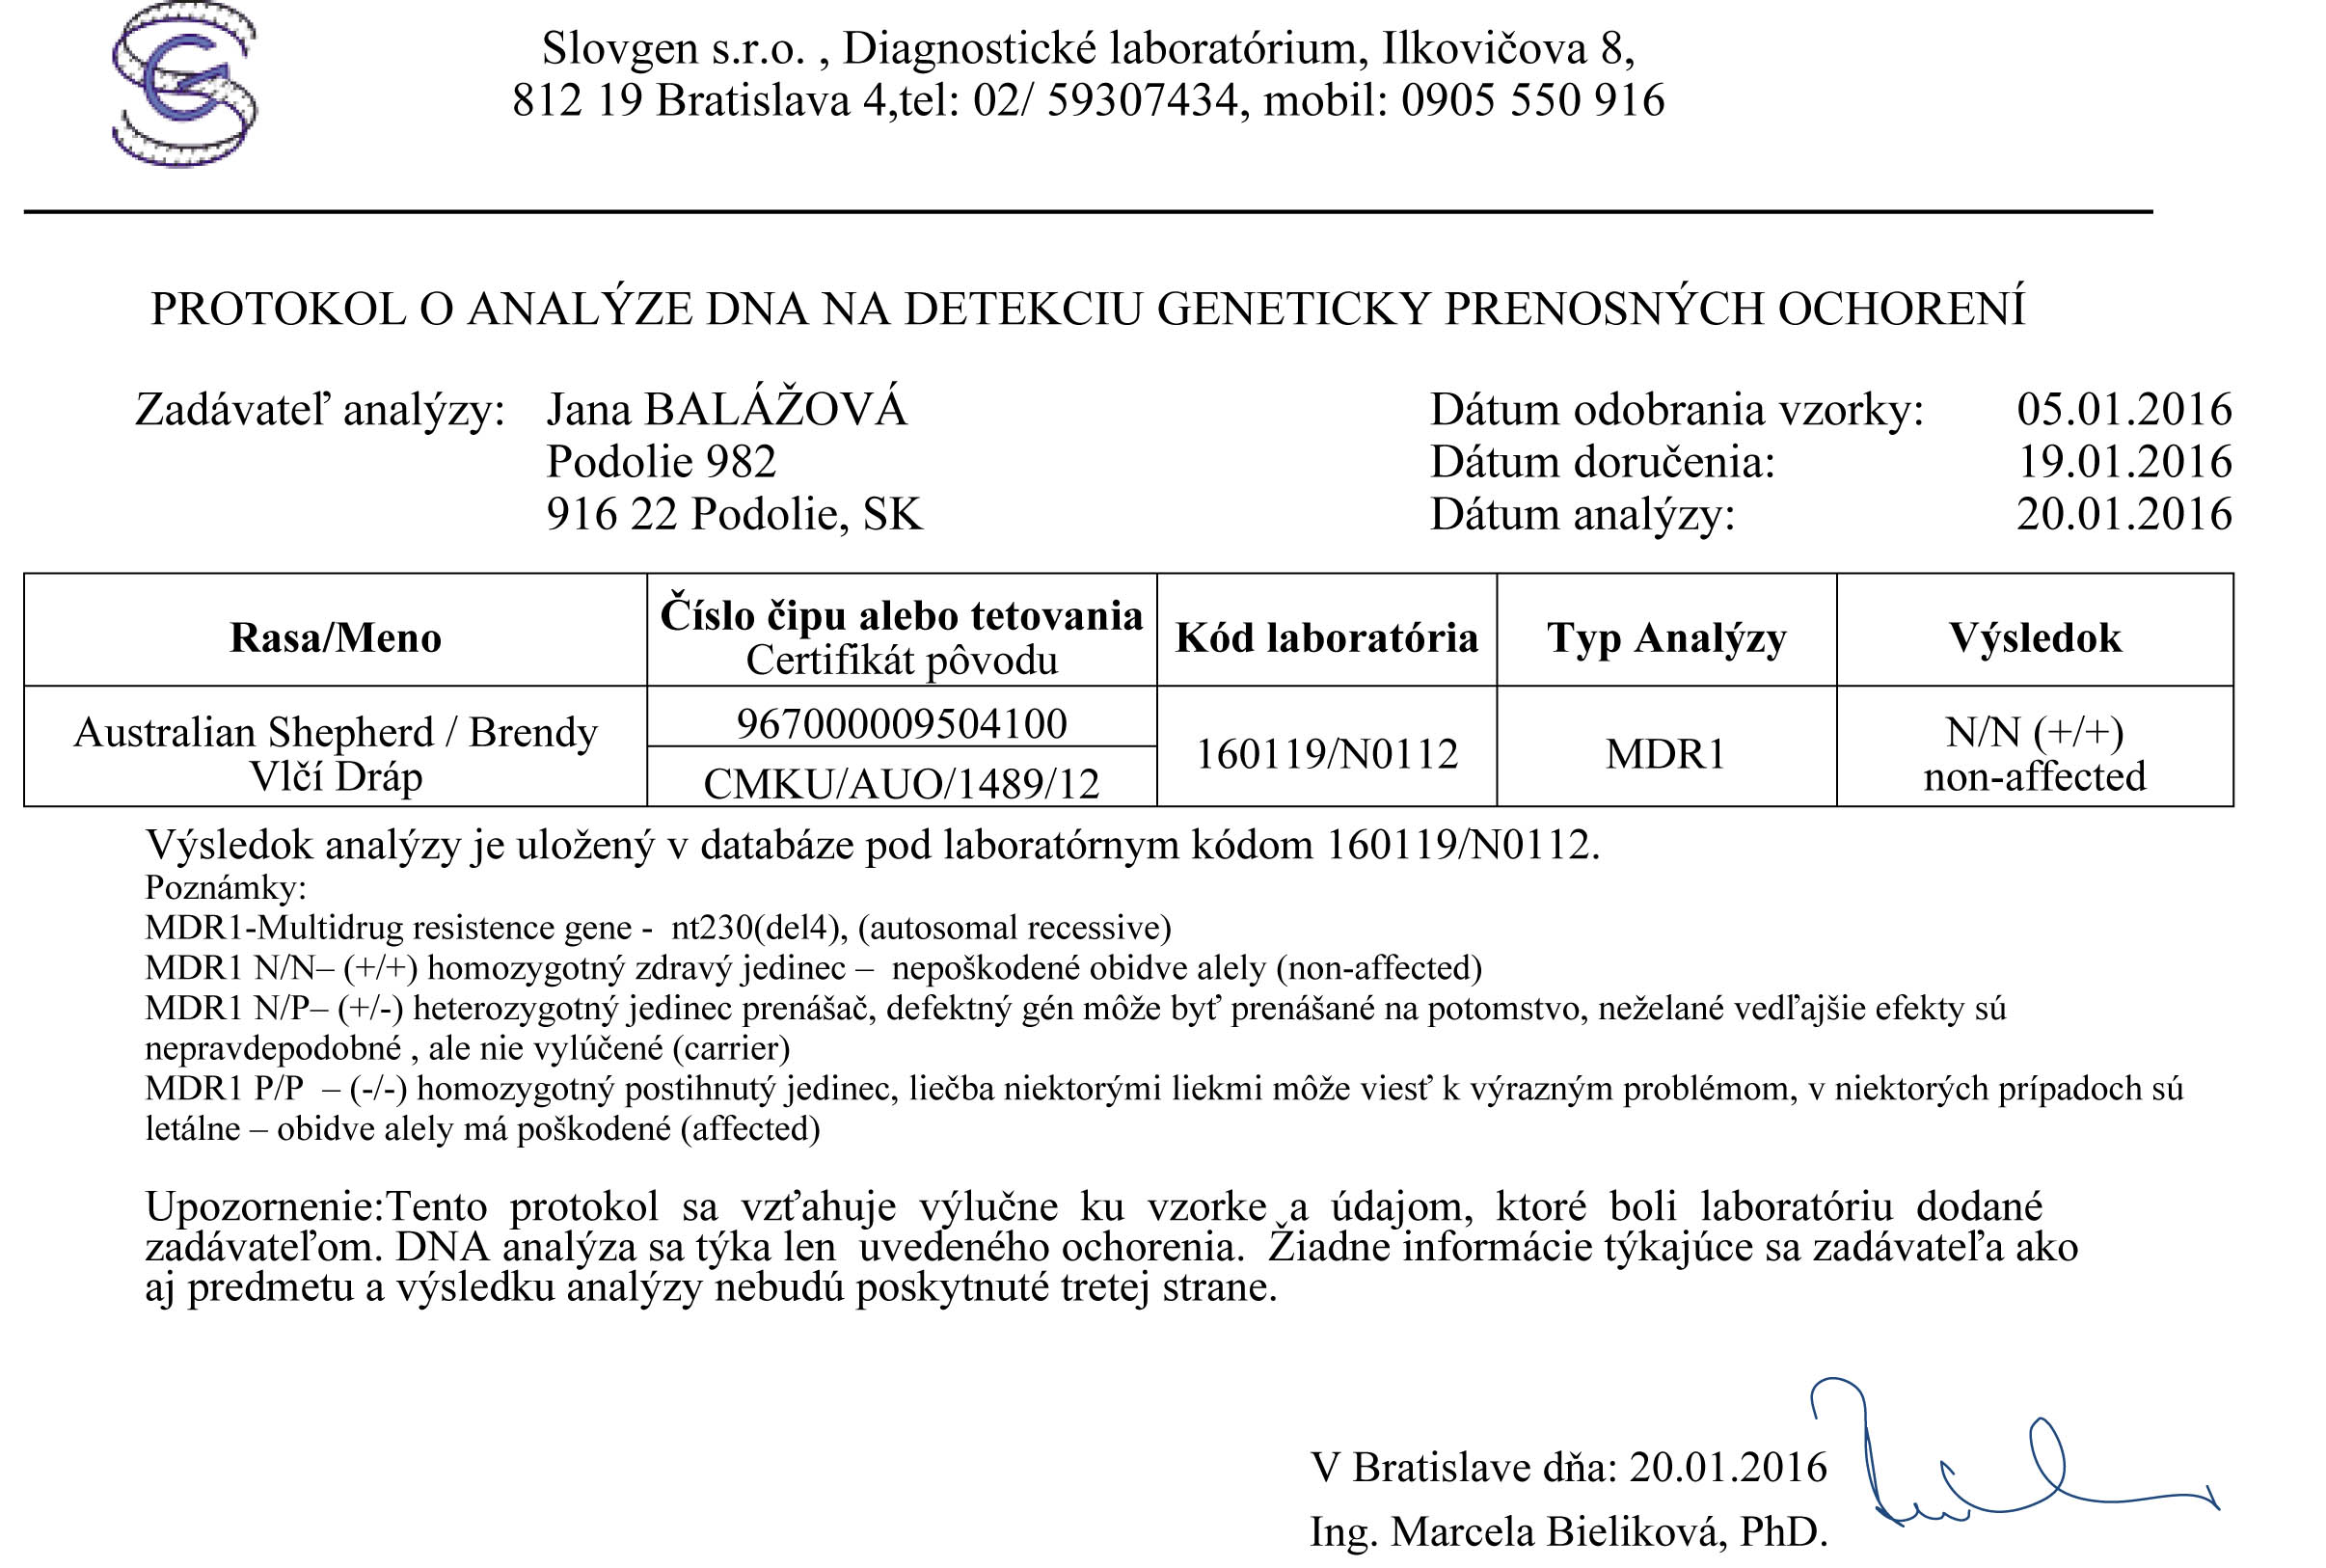 Results of DNA test for MDR1